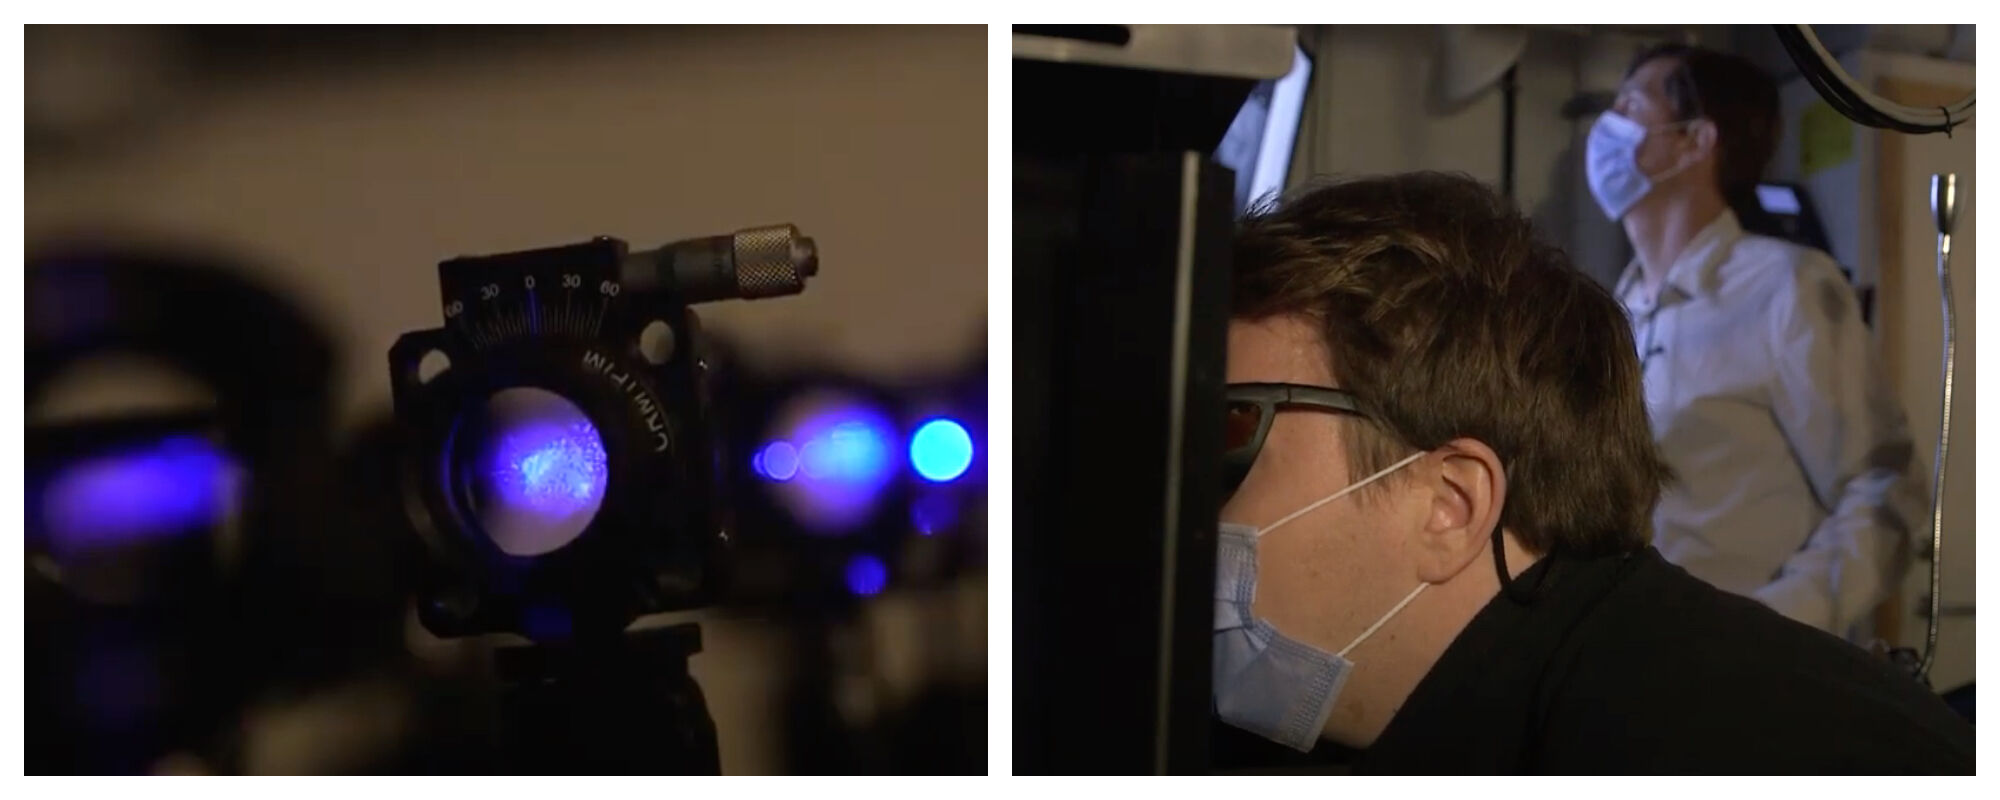 Two images. Close-up of a video camera. One man with face mask sitting in front of a machine, another man in front of a screen.